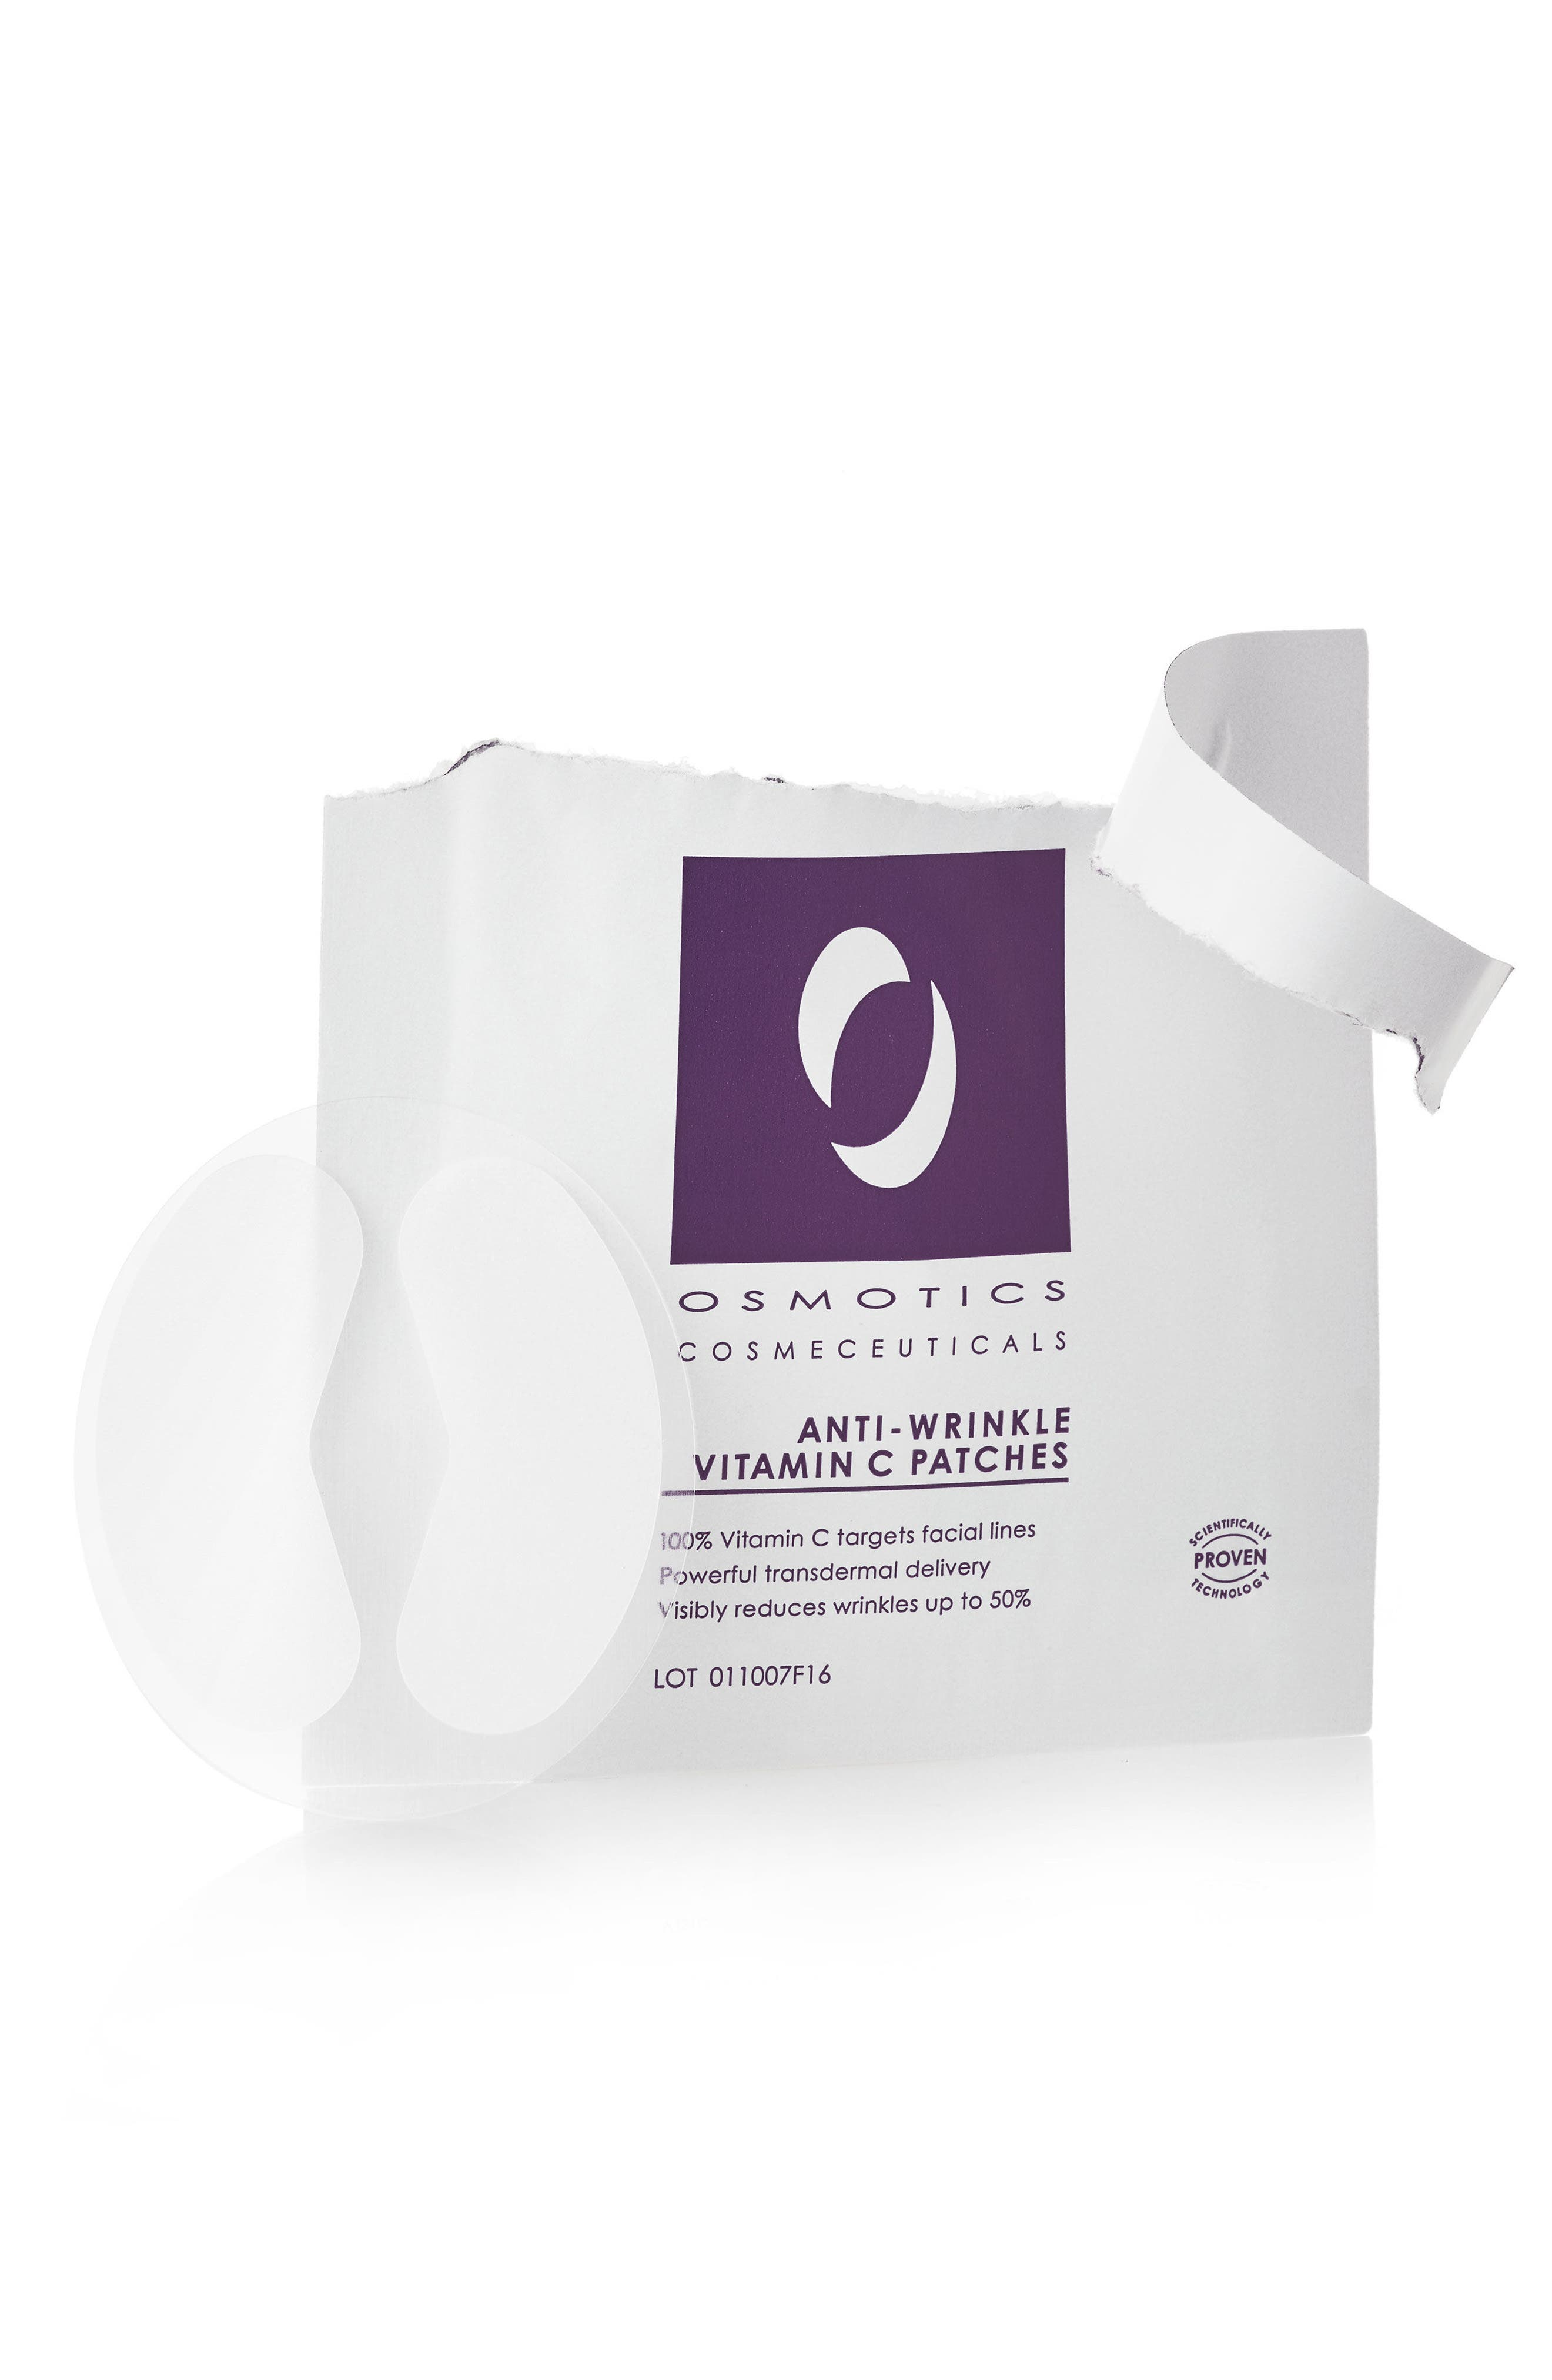 Alternate Image 1 Selected - Osmotics Cosmeceuticals Anti-Wrinkle Vitamin C Patches